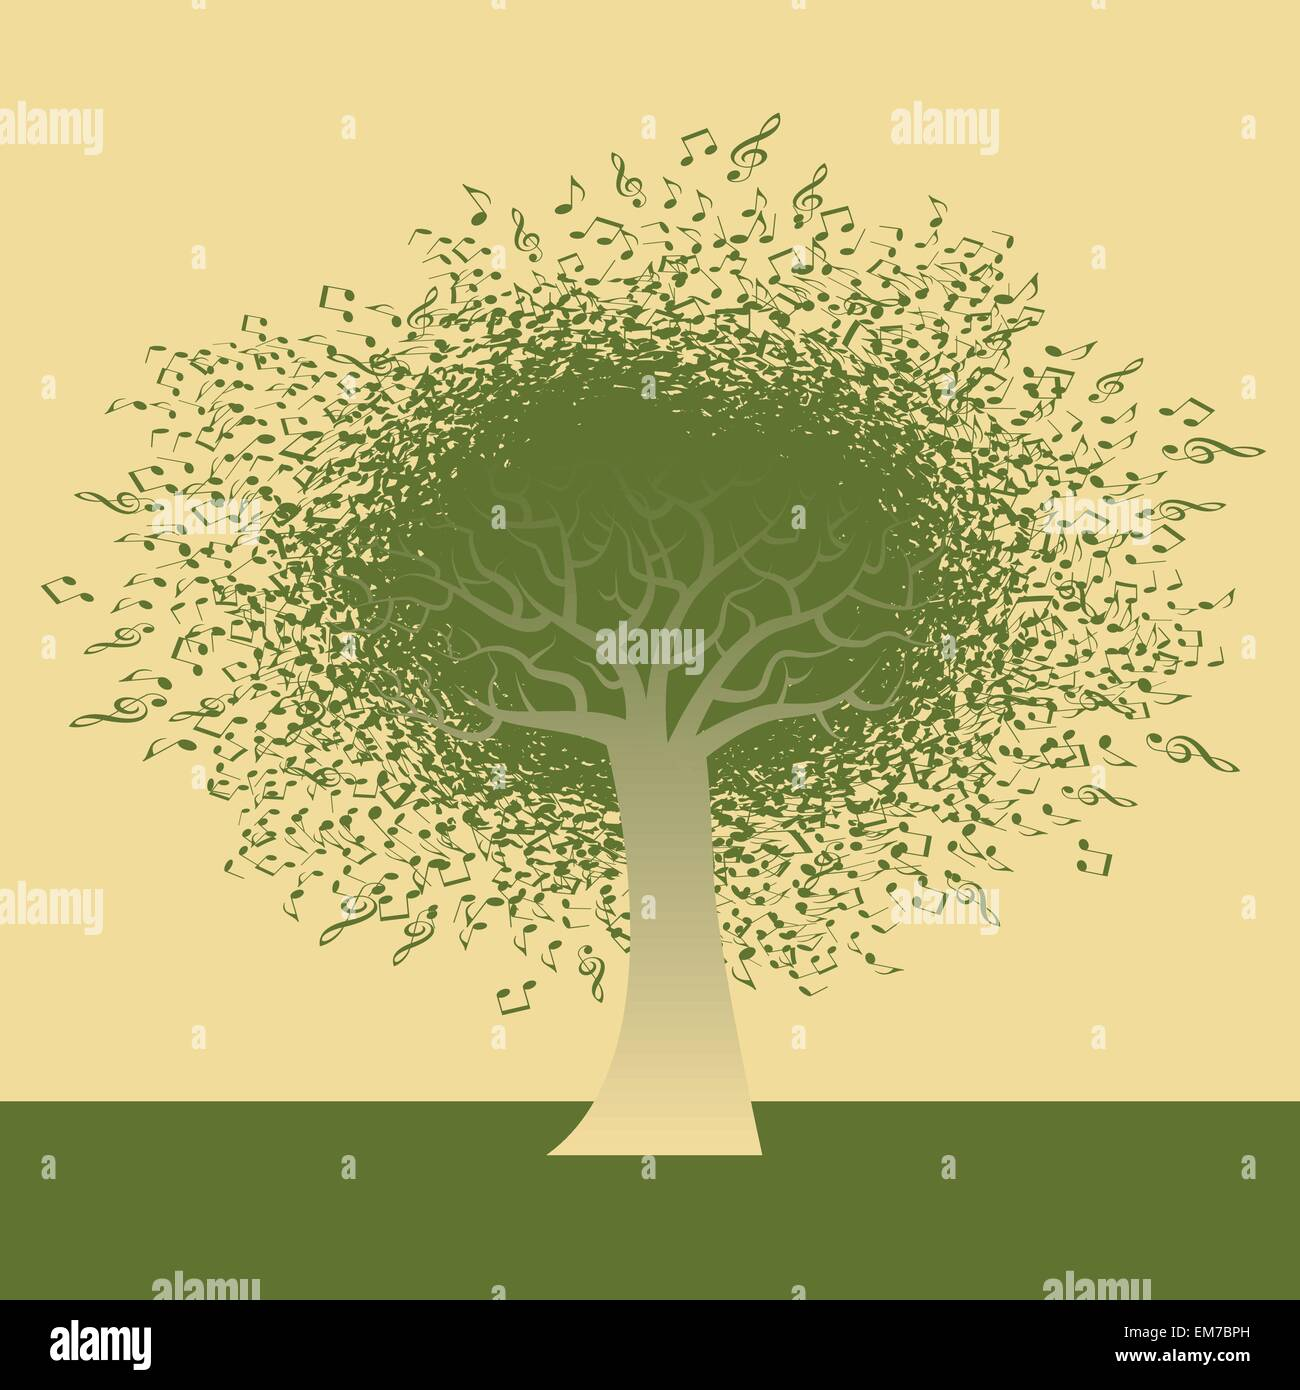 Abstract Musical Note Tree Stock Vector Art & Illustration, Vector ...